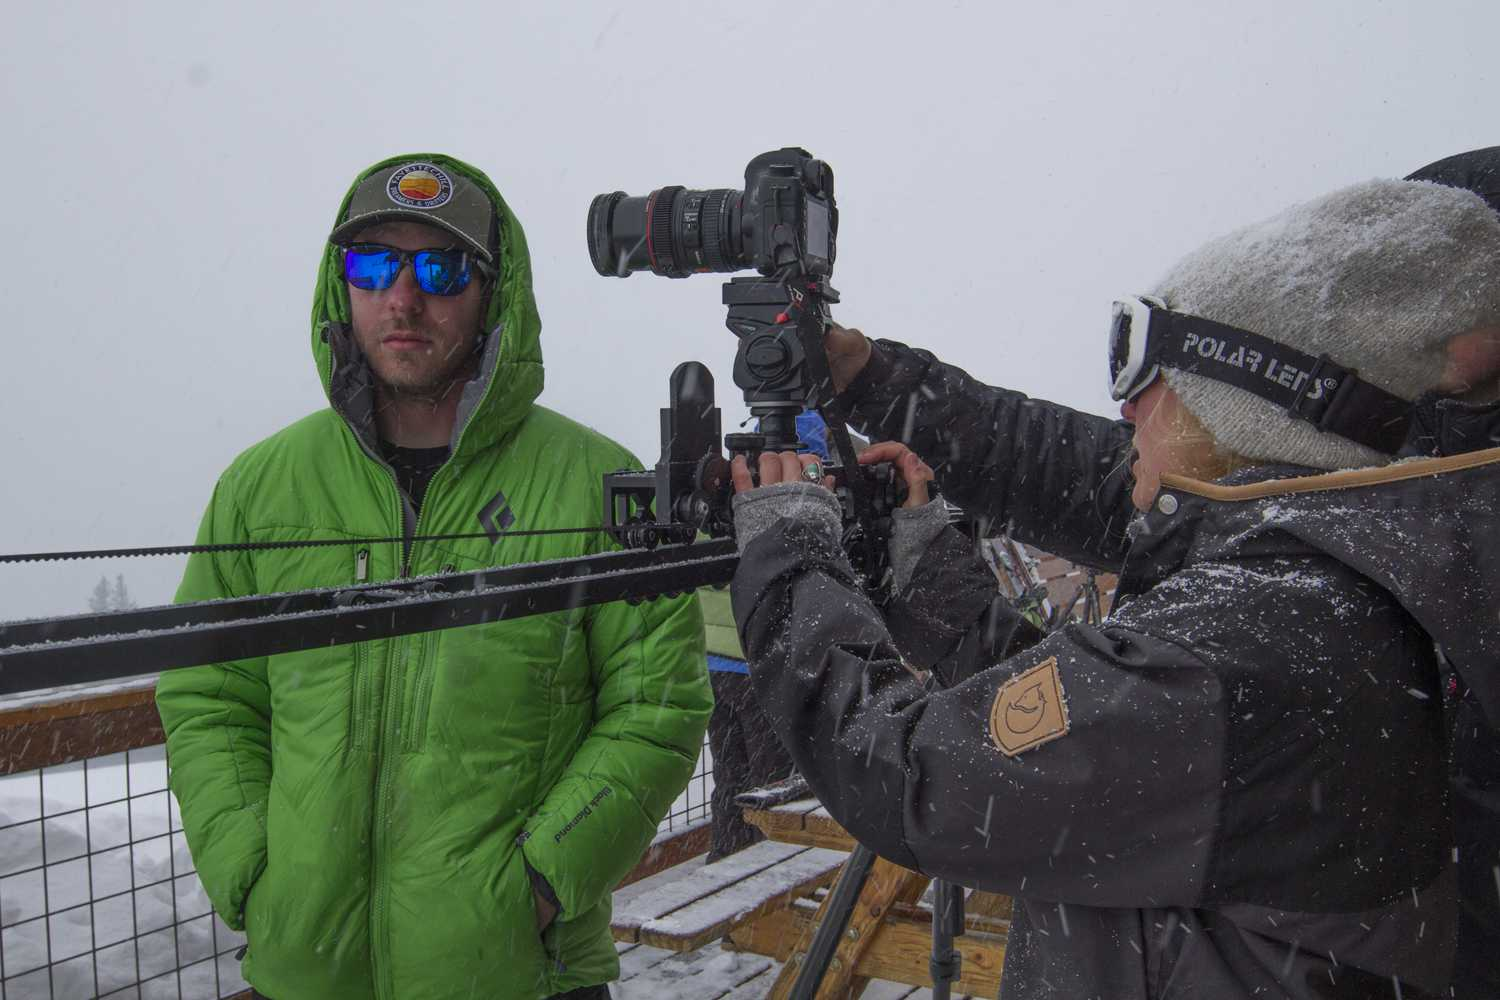 broll shooting in Colorado back country